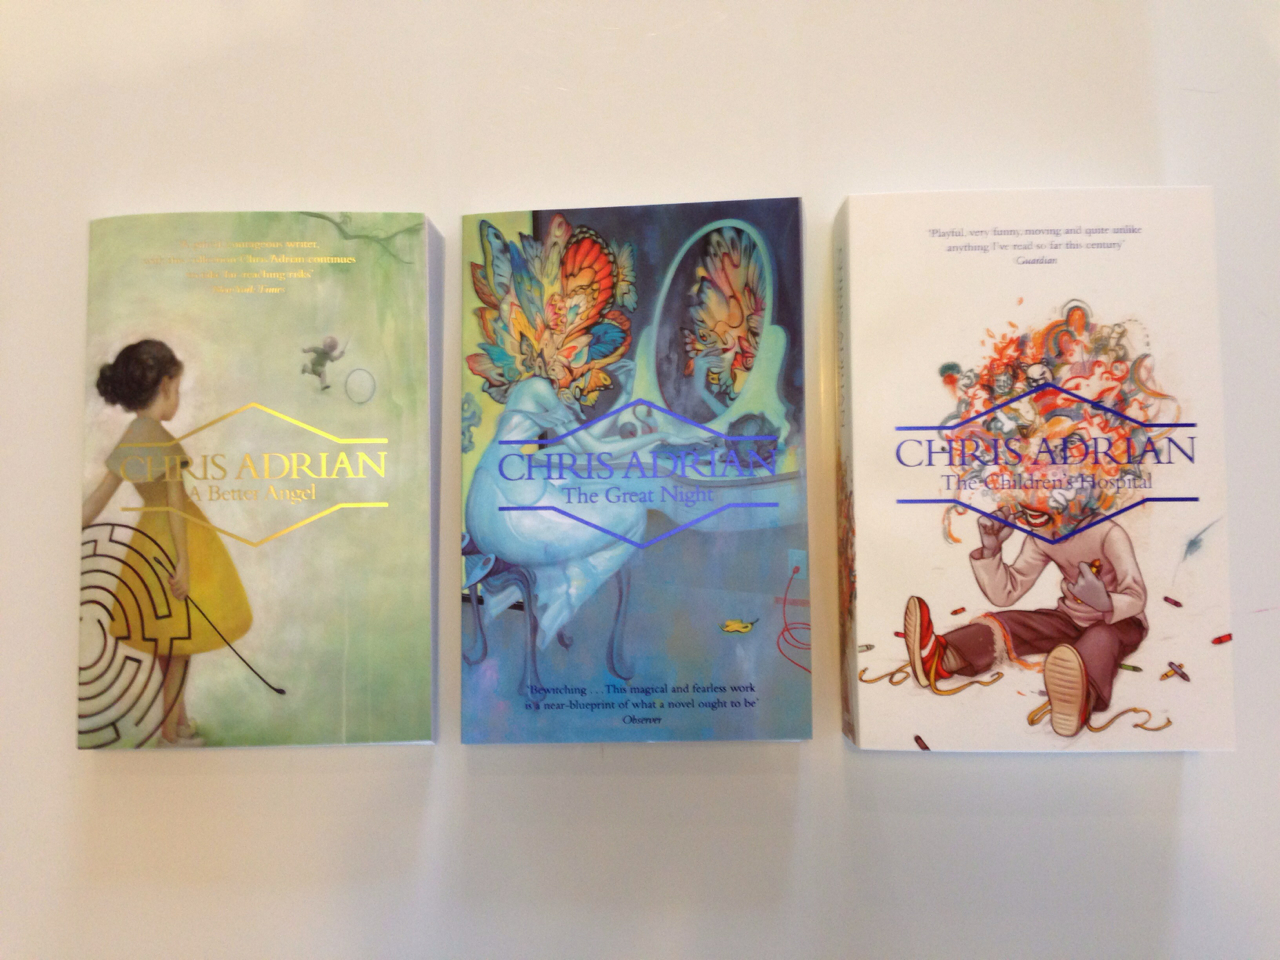 Our paperback collaboration for #ChrisAdrian with @JamesJeanArt. Design by Michael Salu.